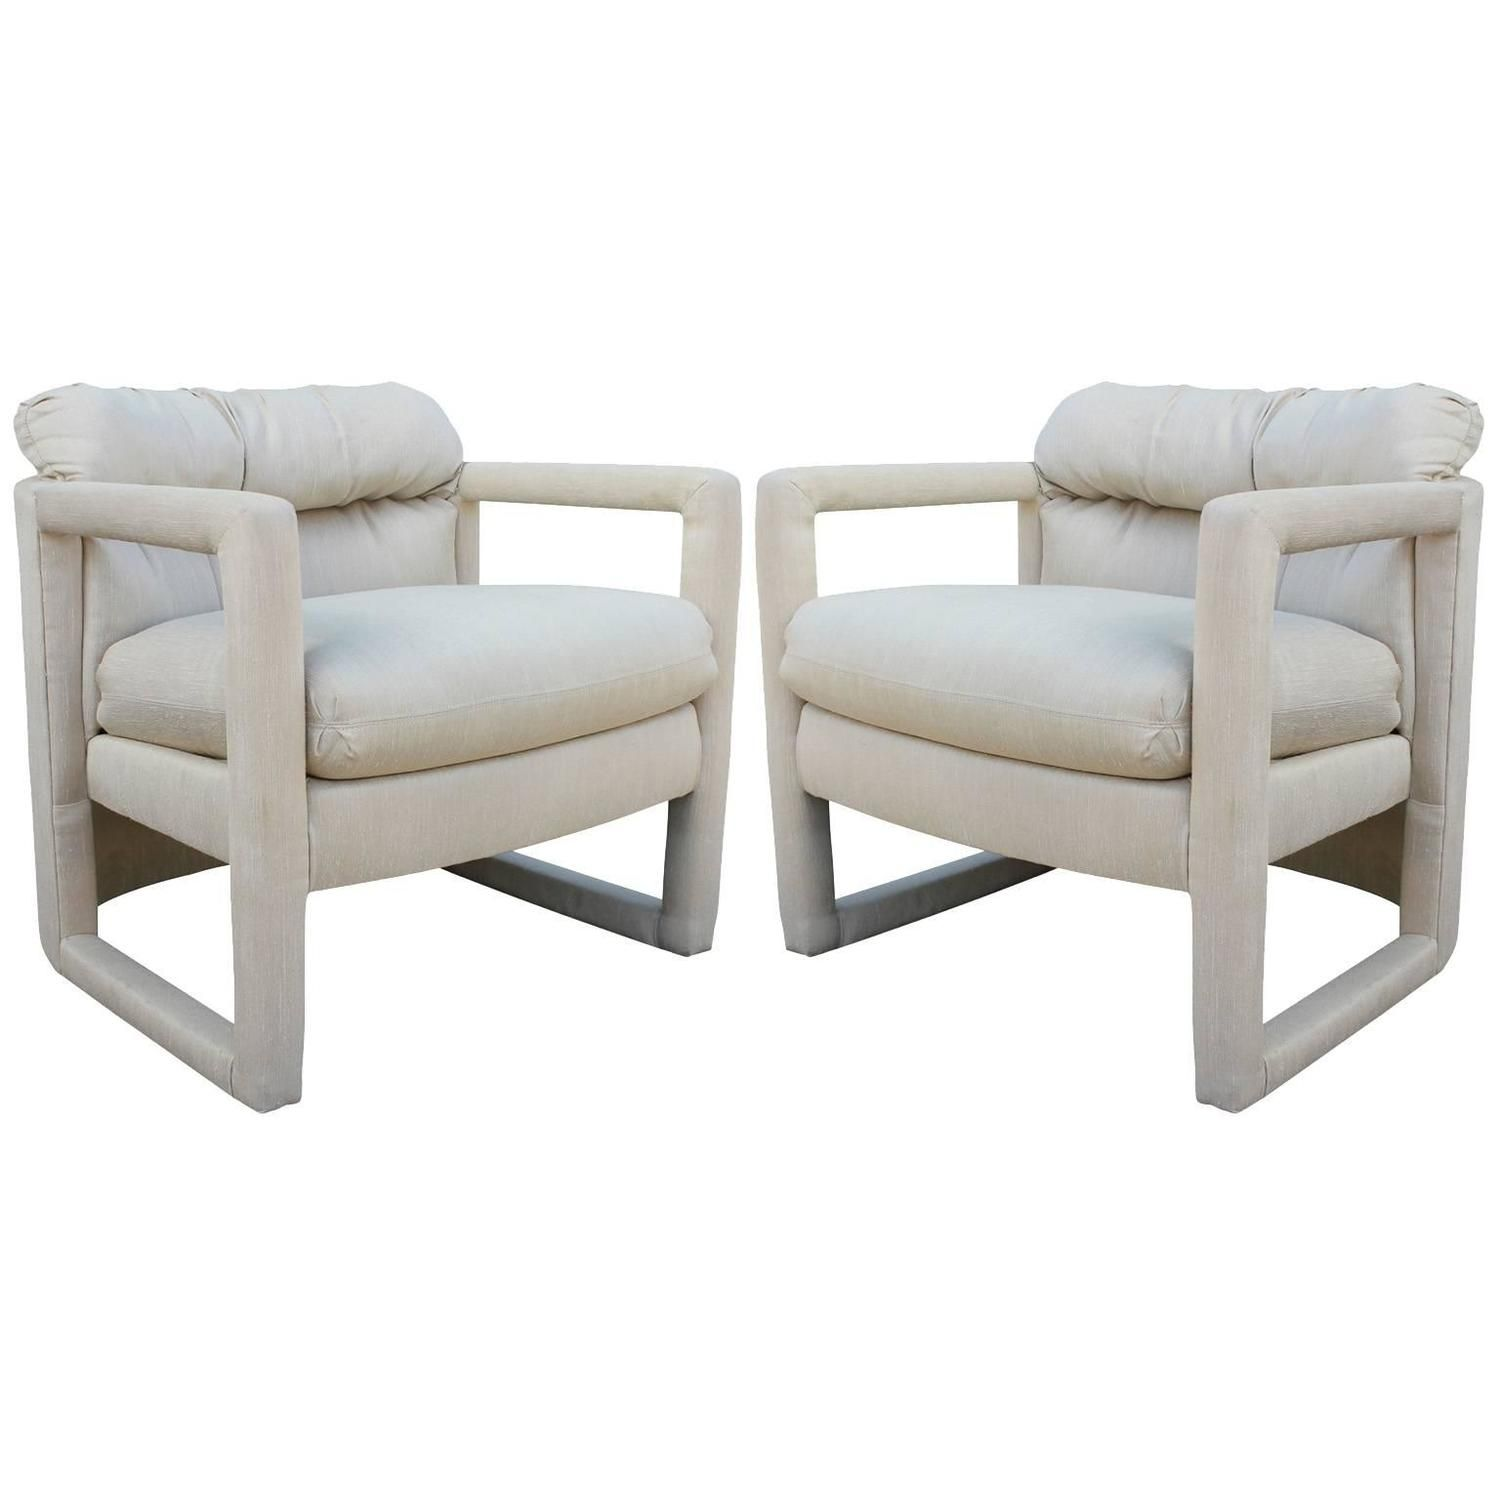 1.8 Fabulous Pair Of Drexel Barrel Back Parsons Chairs | From A Unique  Collection Of Antique And Modern Lounge Chairs At ...